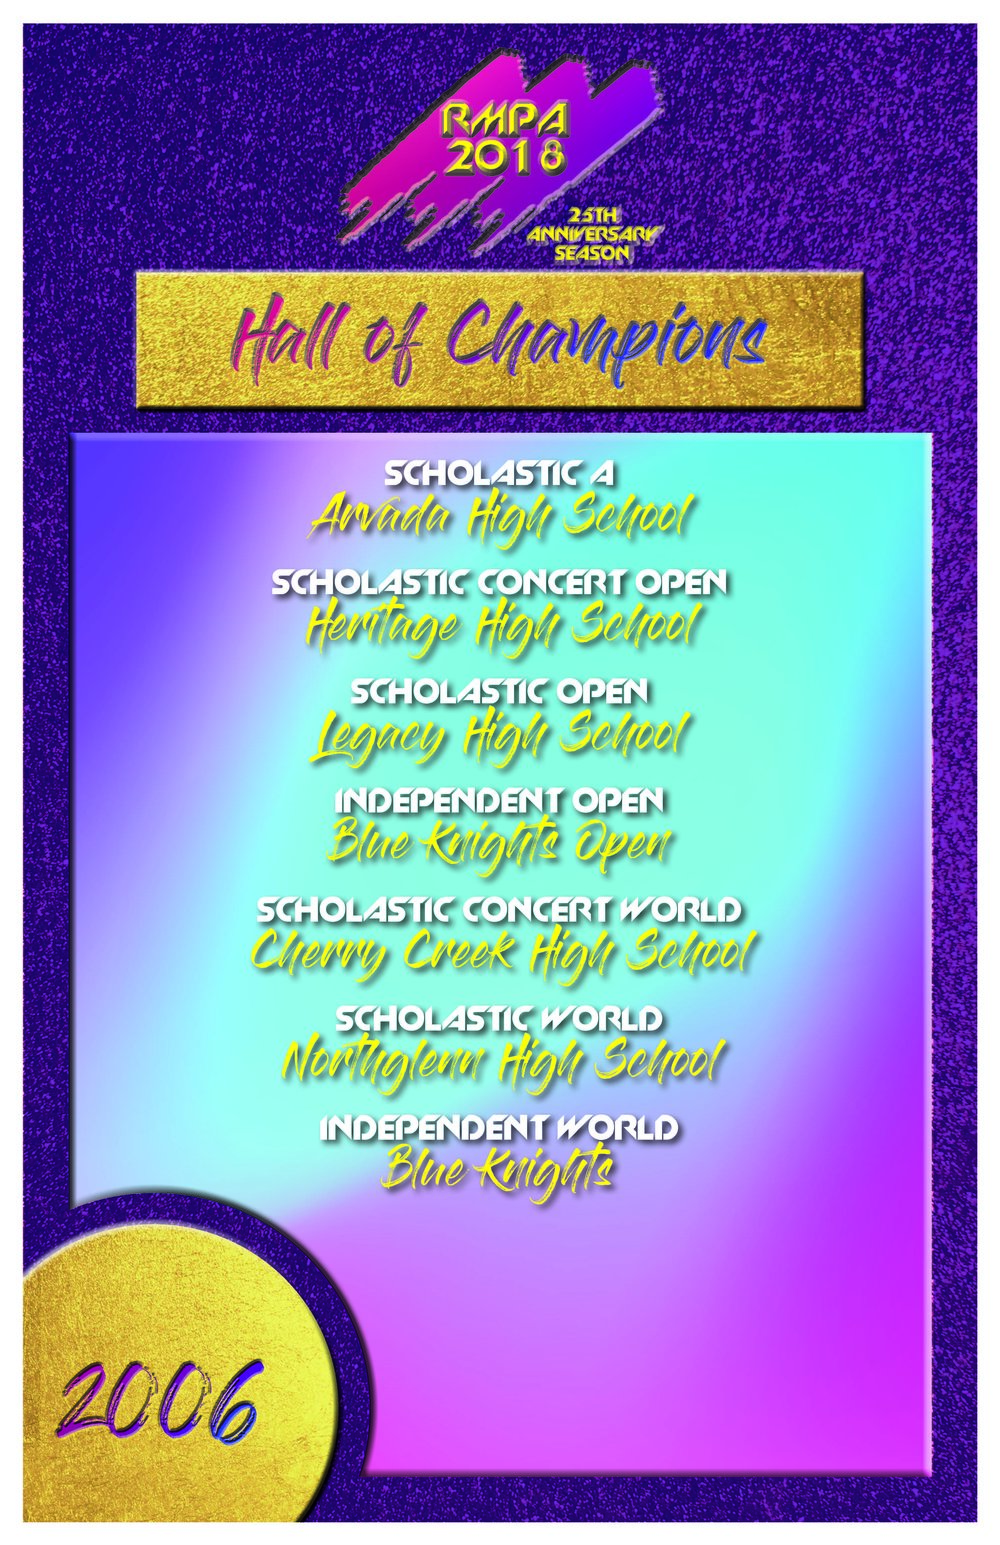 Hall of Champions Posters_Page_14.jpg